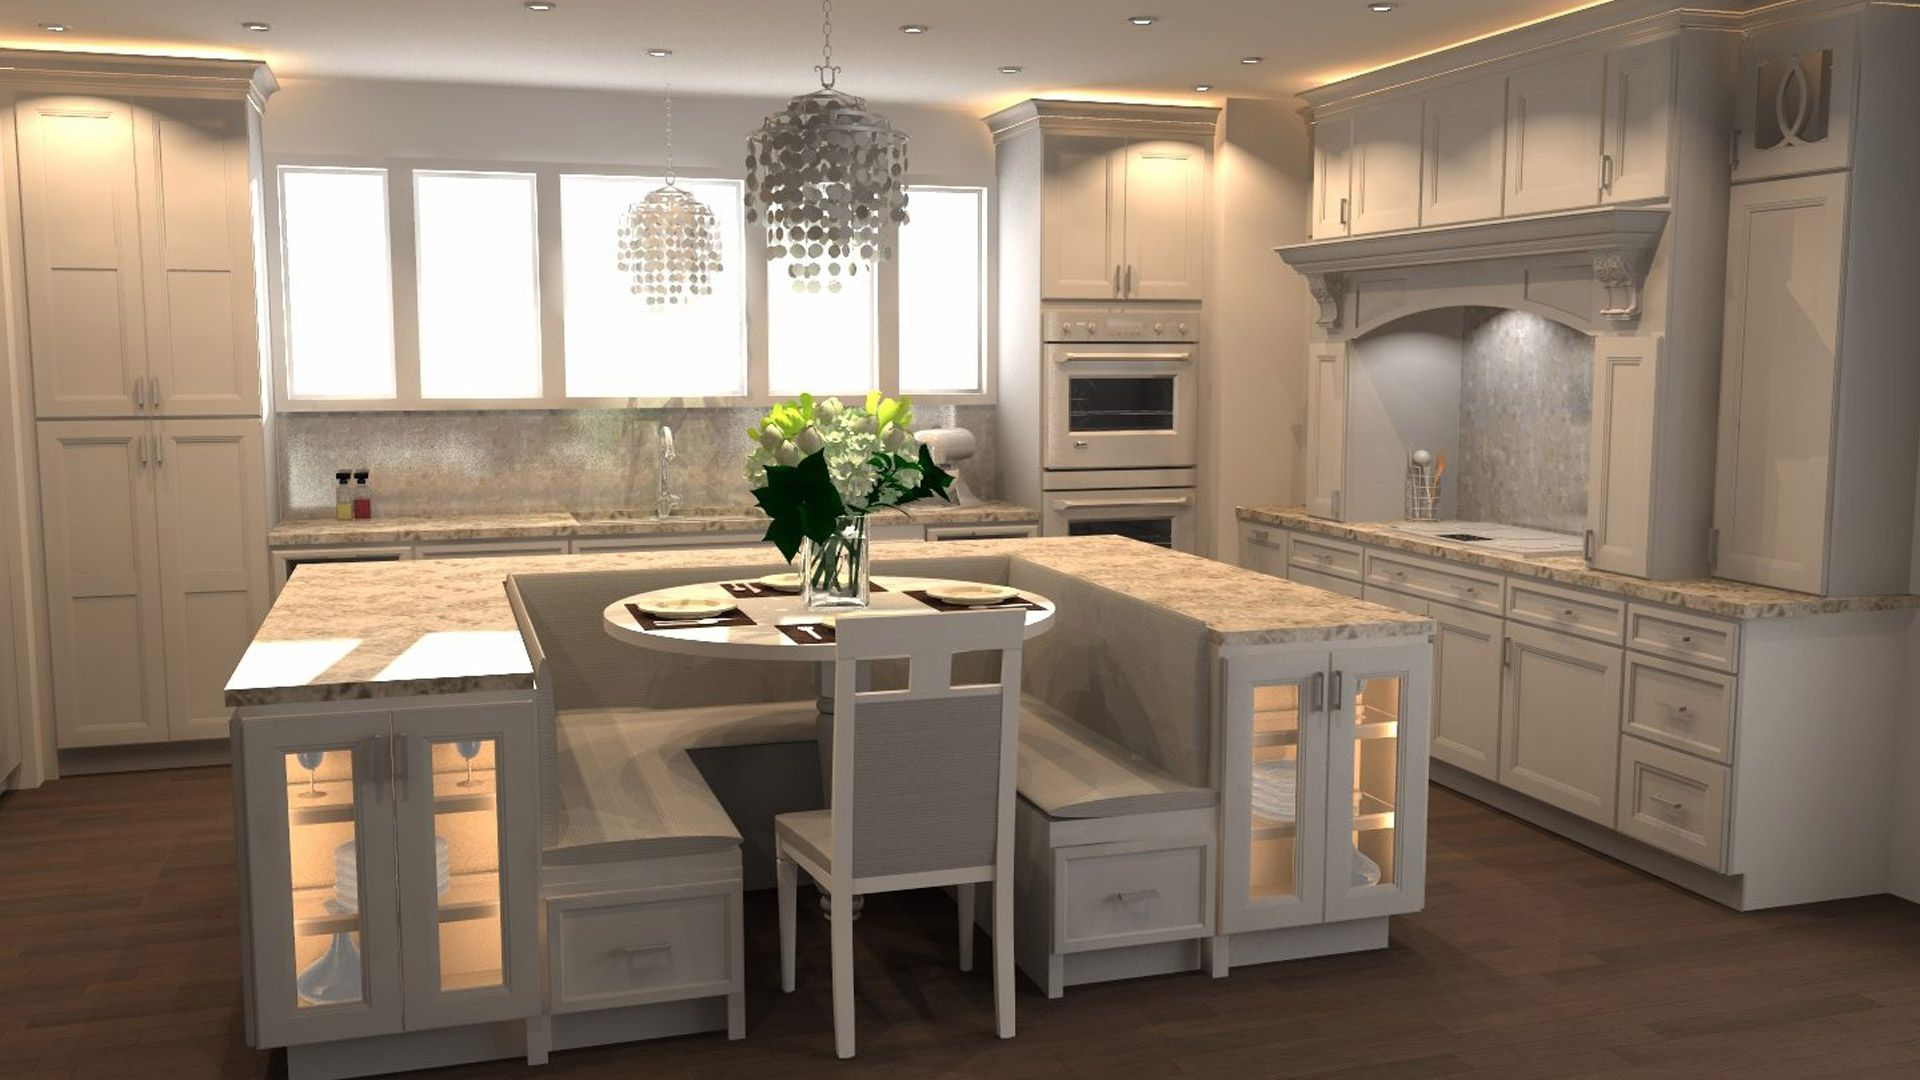 2020 Design in 2020 | Free kitchen design, Kitchen design ...